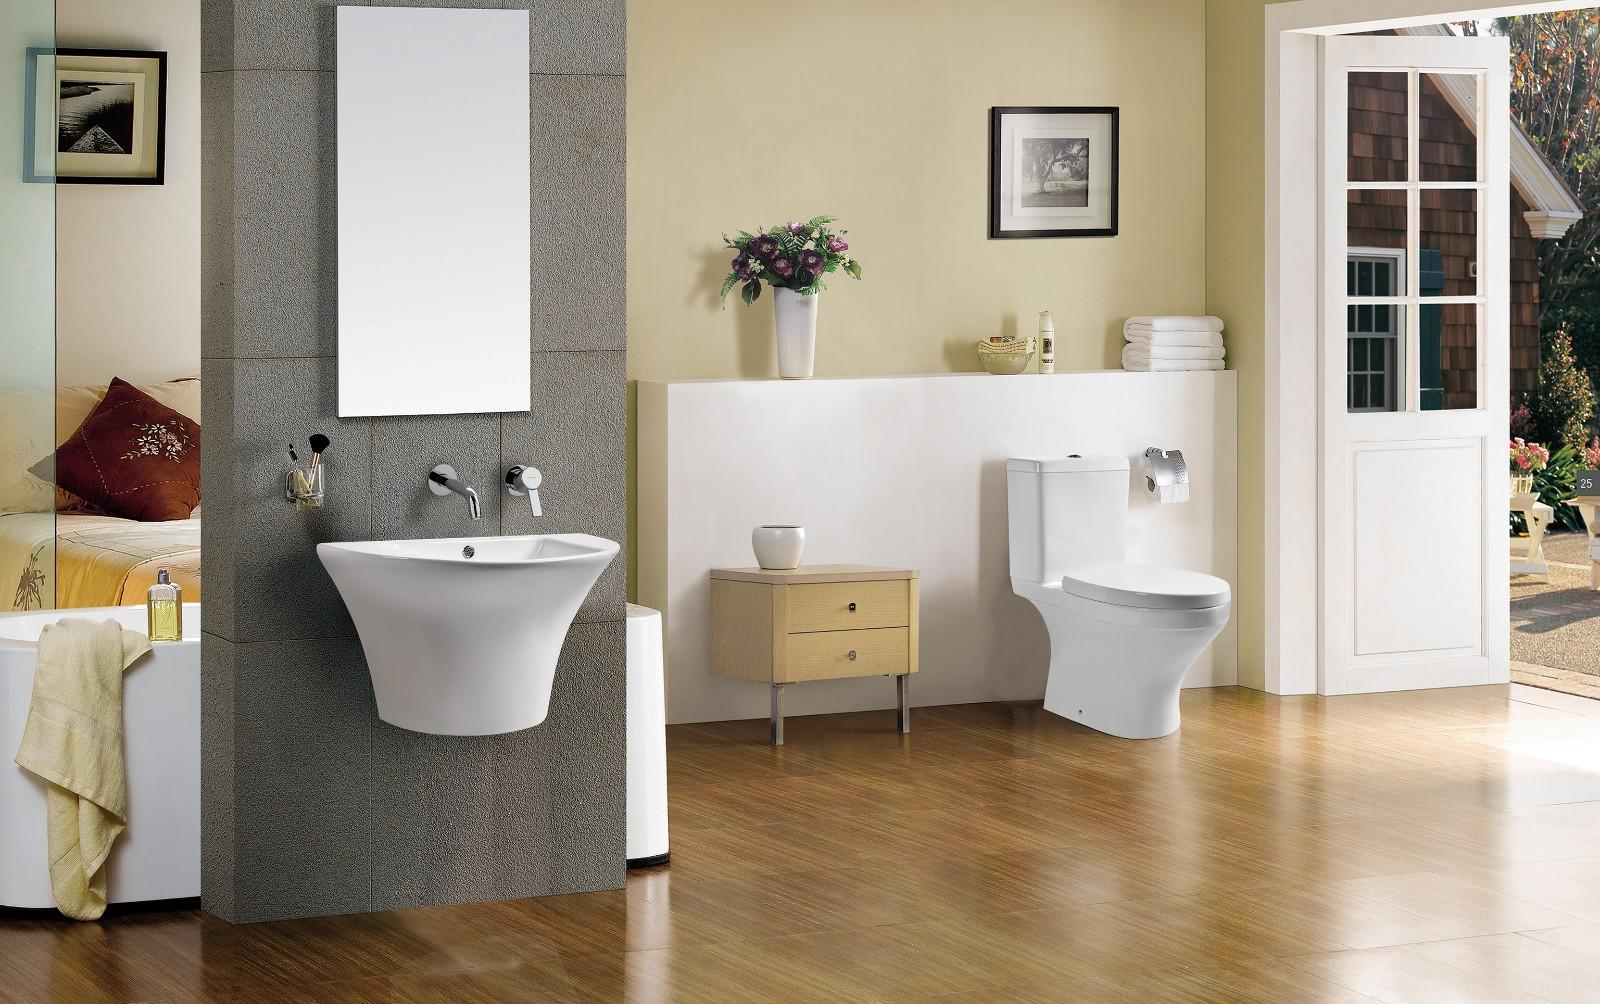 economical price two piece toilet porcelain grab now for bank-3